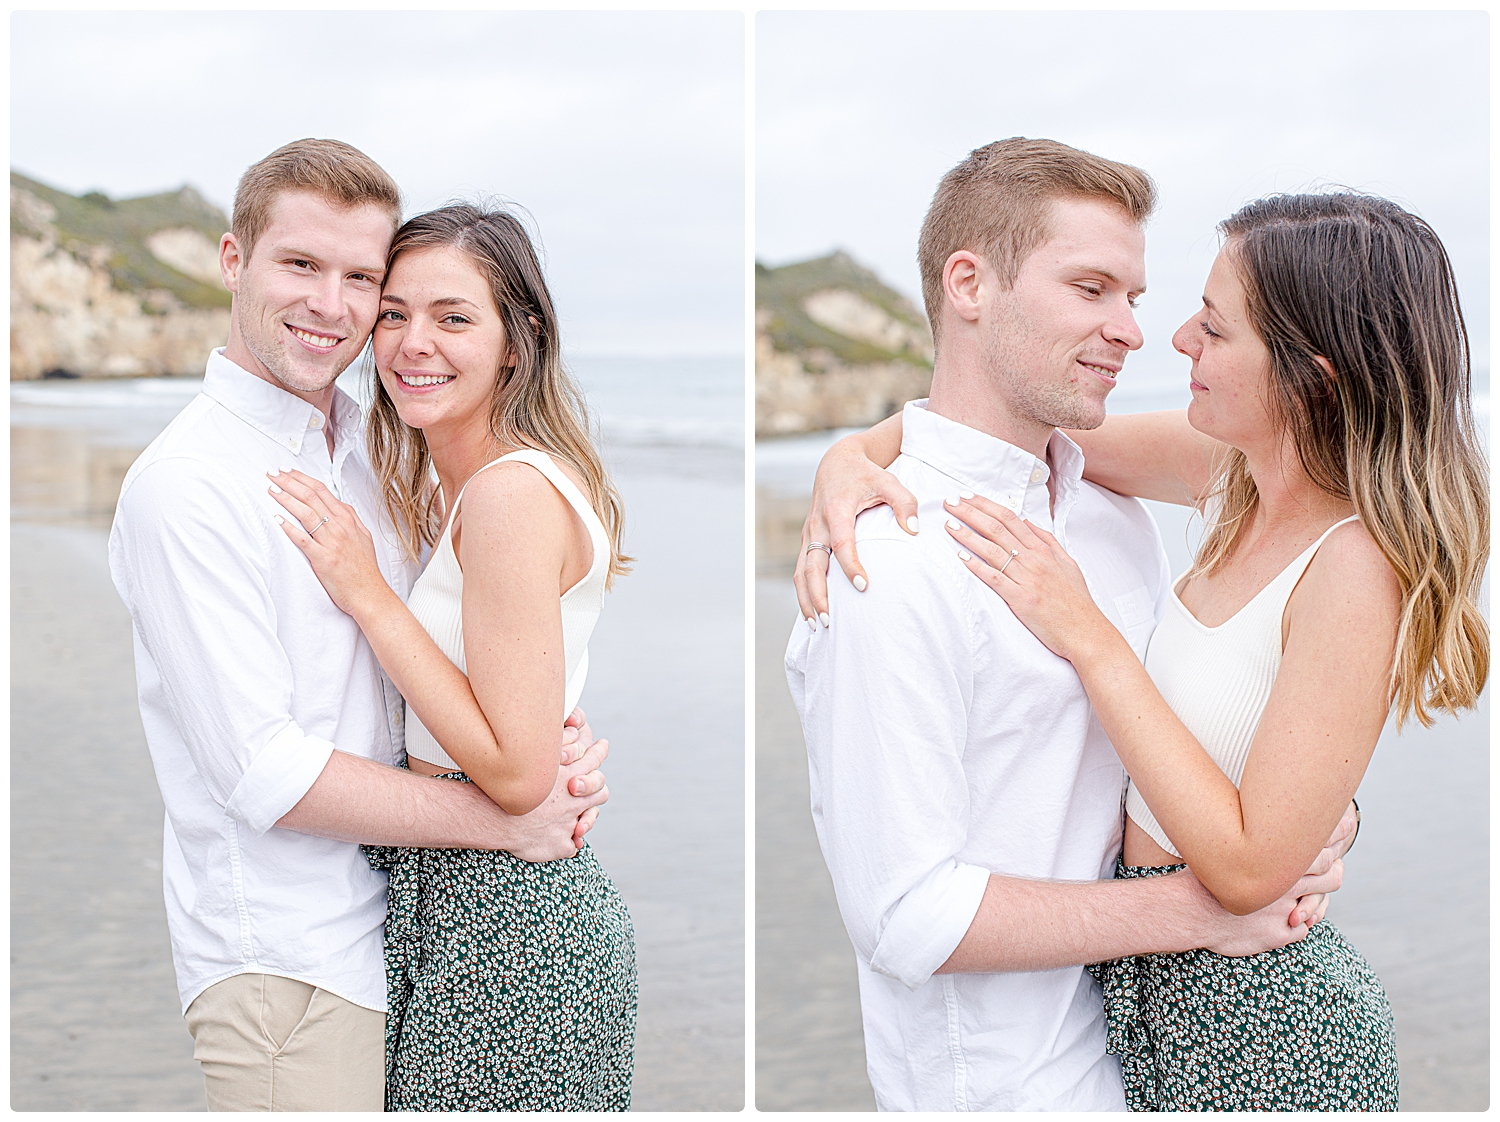 061919_EthanEmma_proposal_Renoda Campbell Photography-7215.jpg